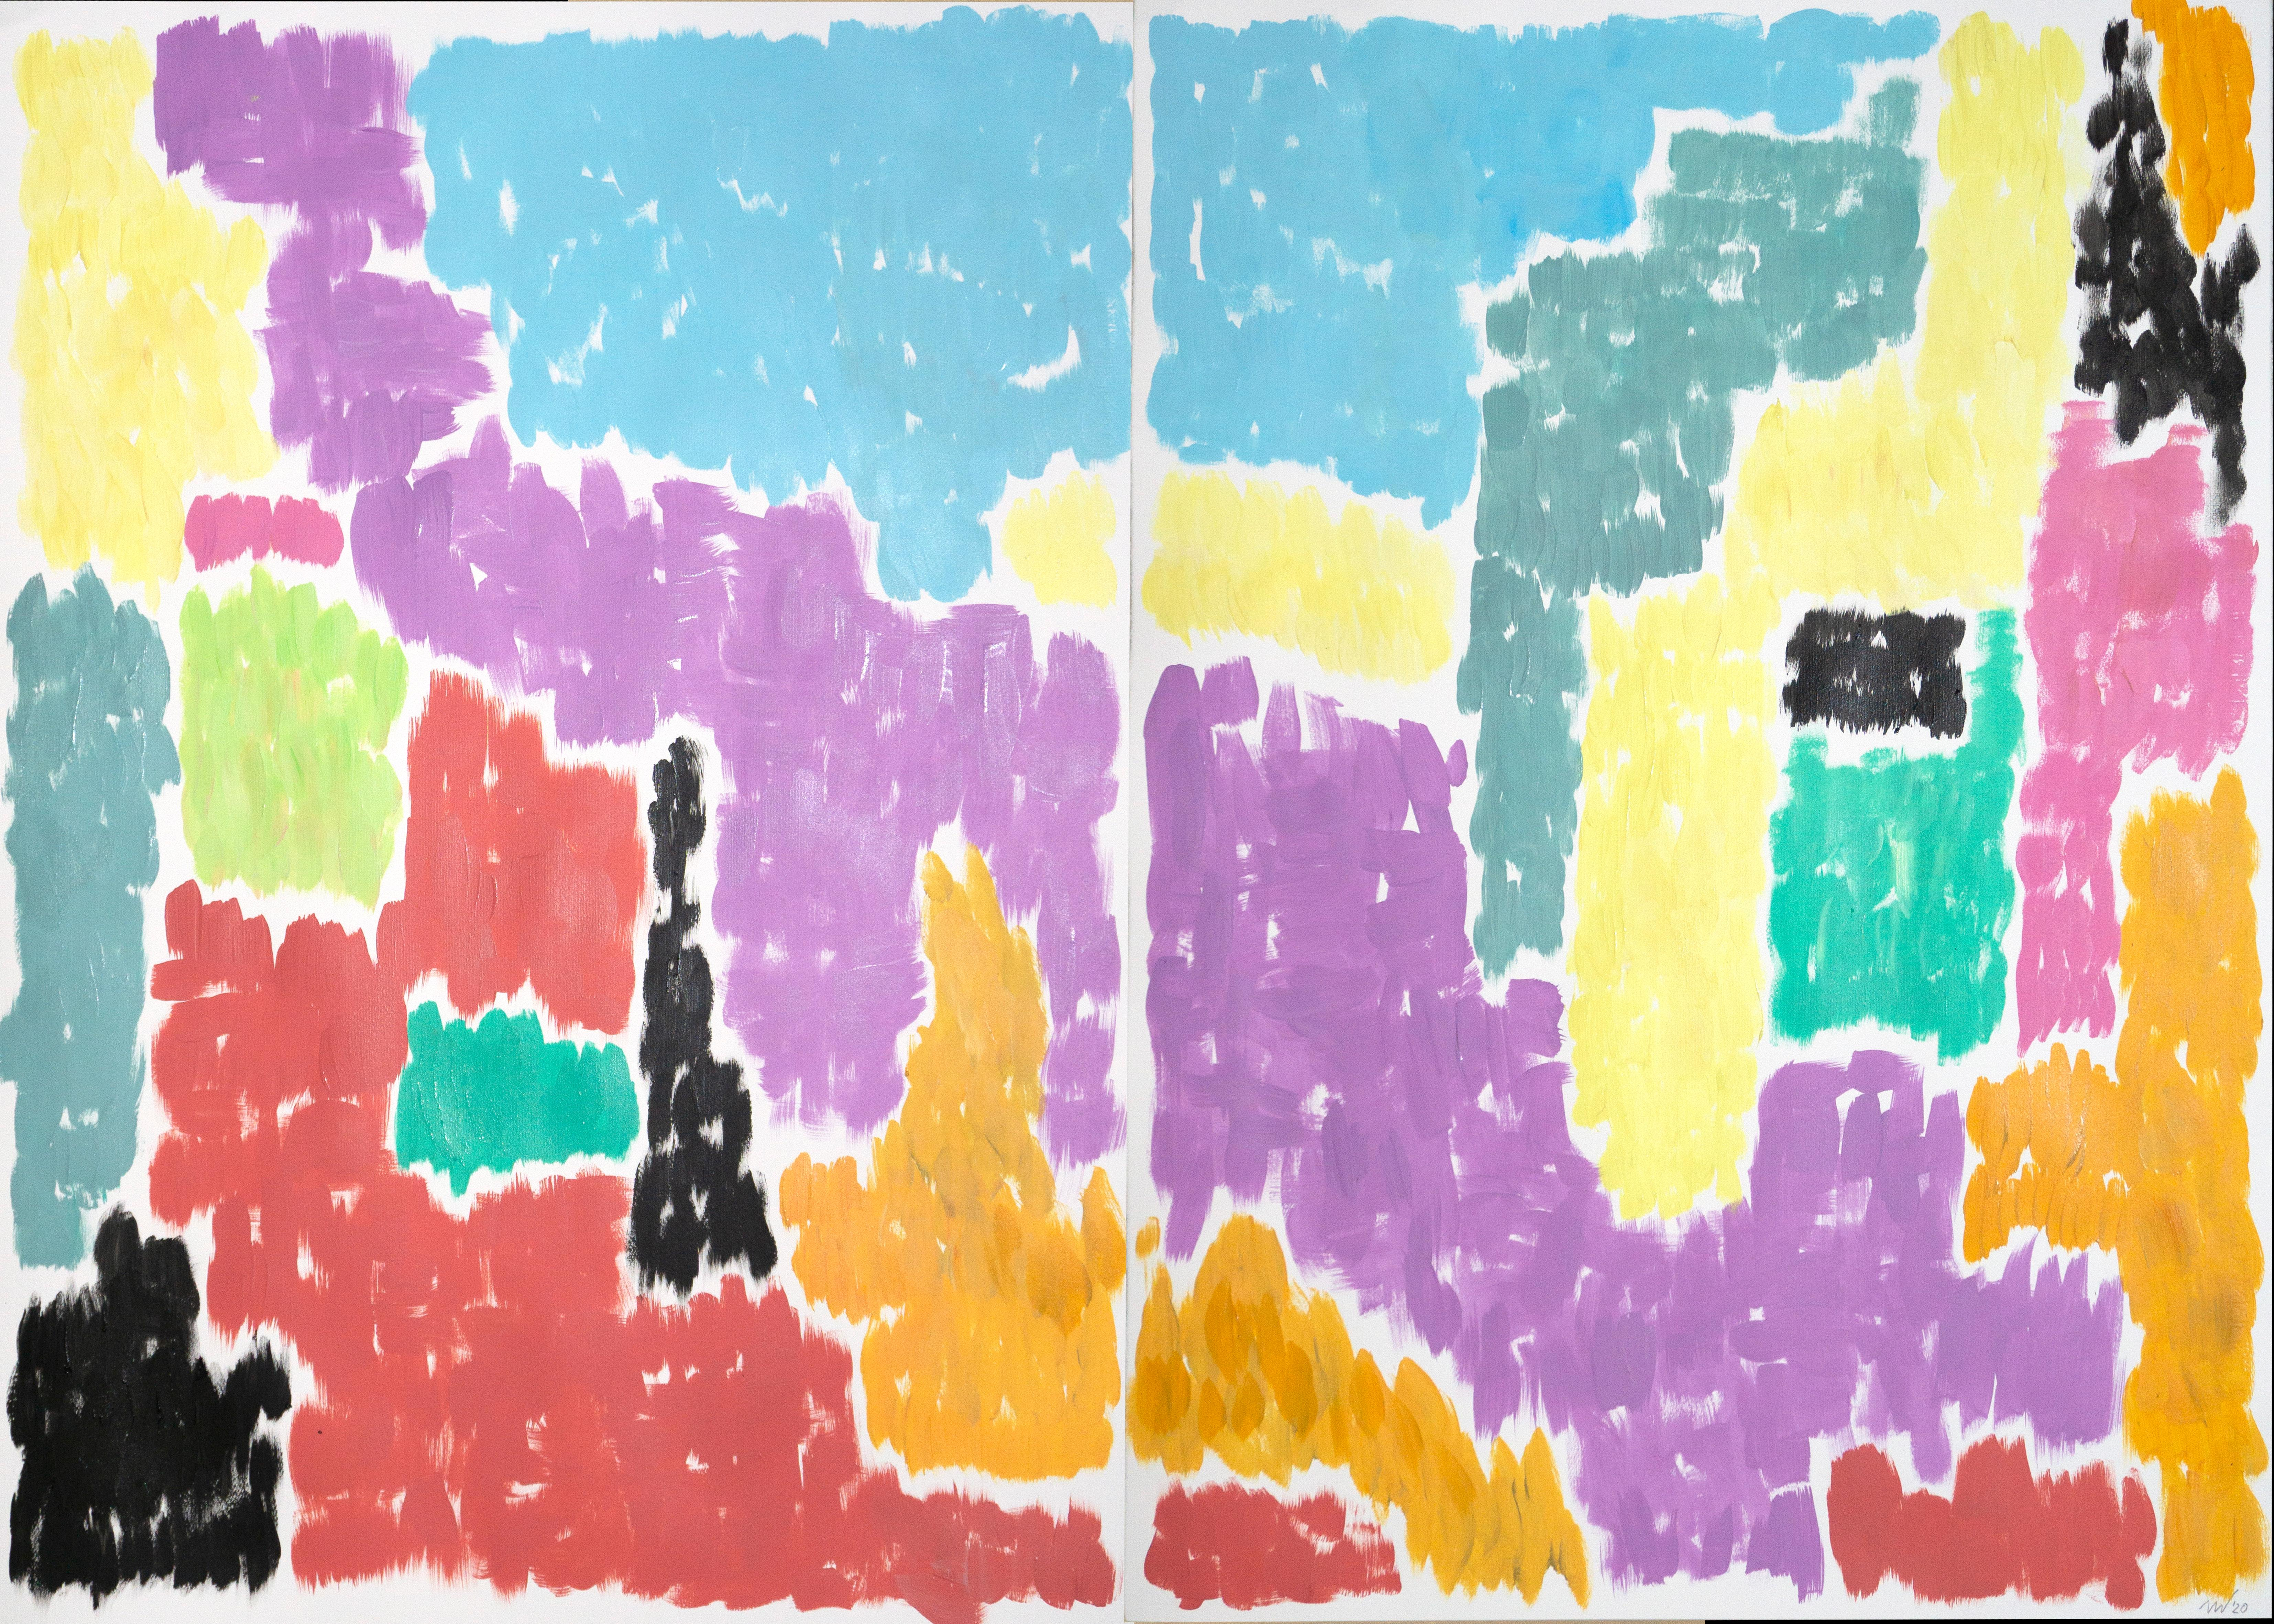 Leaving the City, Art Deco Painting of Abstract Vivid Shapes, Coral and Green